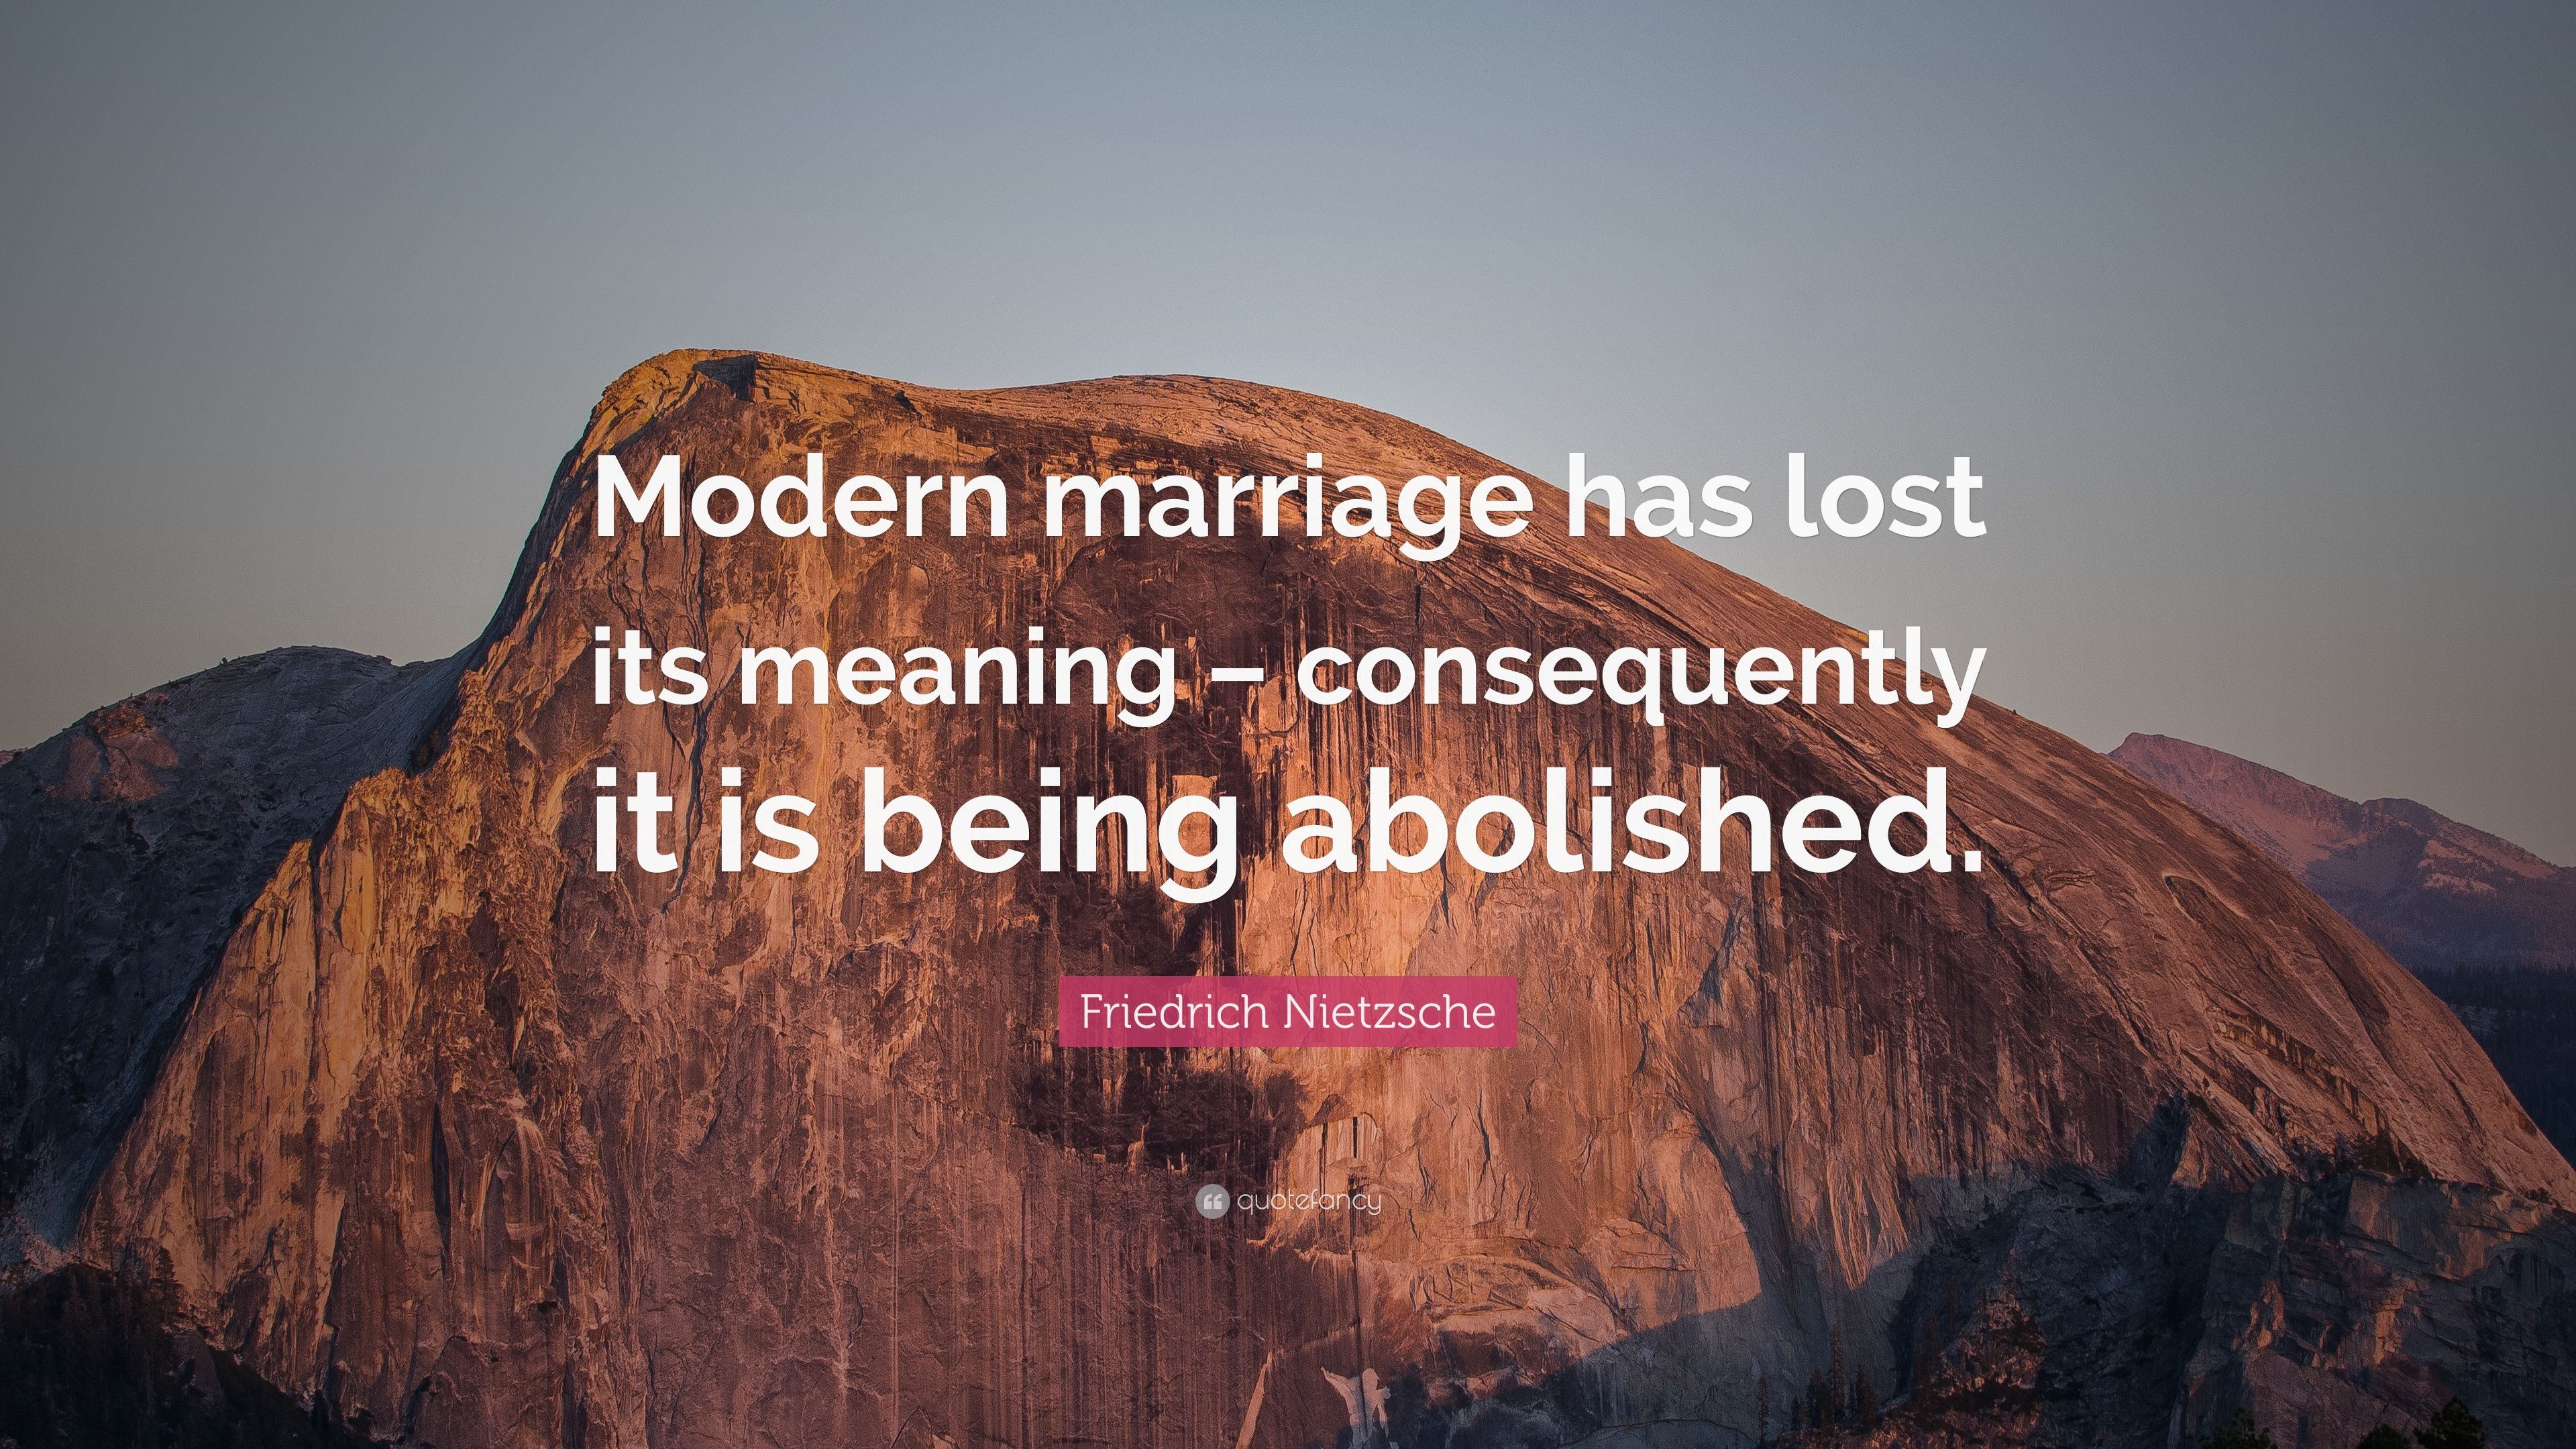 Delightful Friedrich Nietzsche Quote: U201cModern Marriage Has Lost Its Meaning U2013  Consequently It Is Being